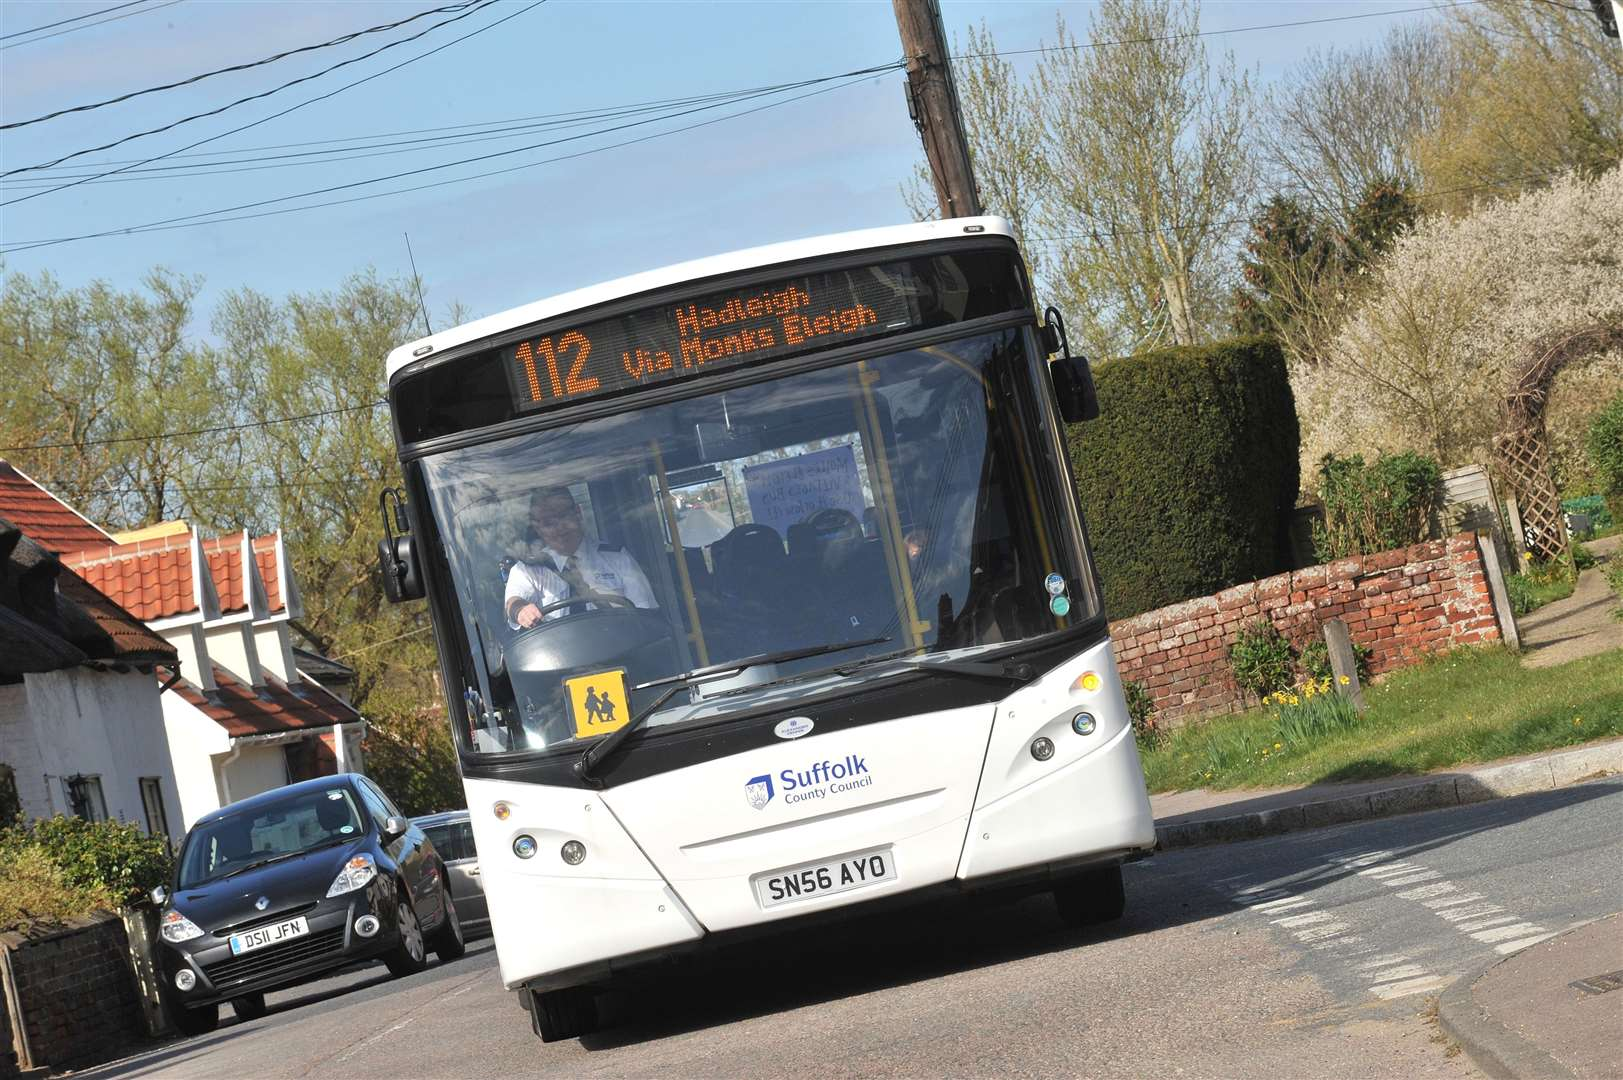 The 112 bus is one of the services under threat, after Suffolk County Council announced cuts to public transport subsidies. (12725064)